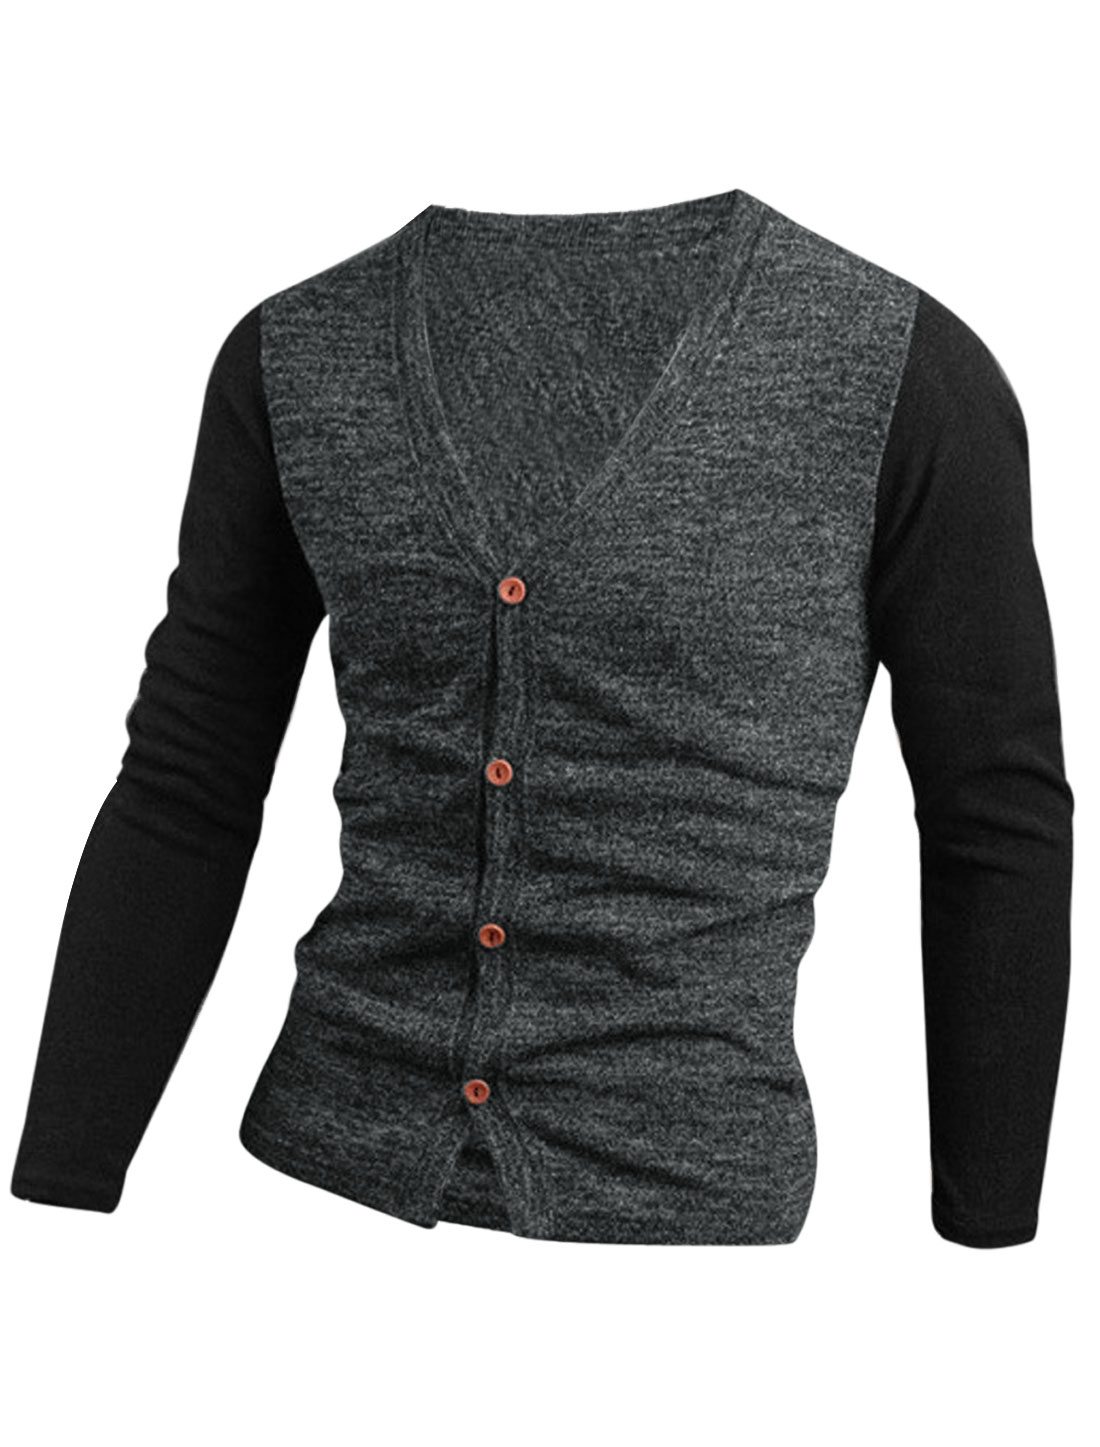 Men Contrast Color Single Breasted Casual Cardigan Dark Gray M